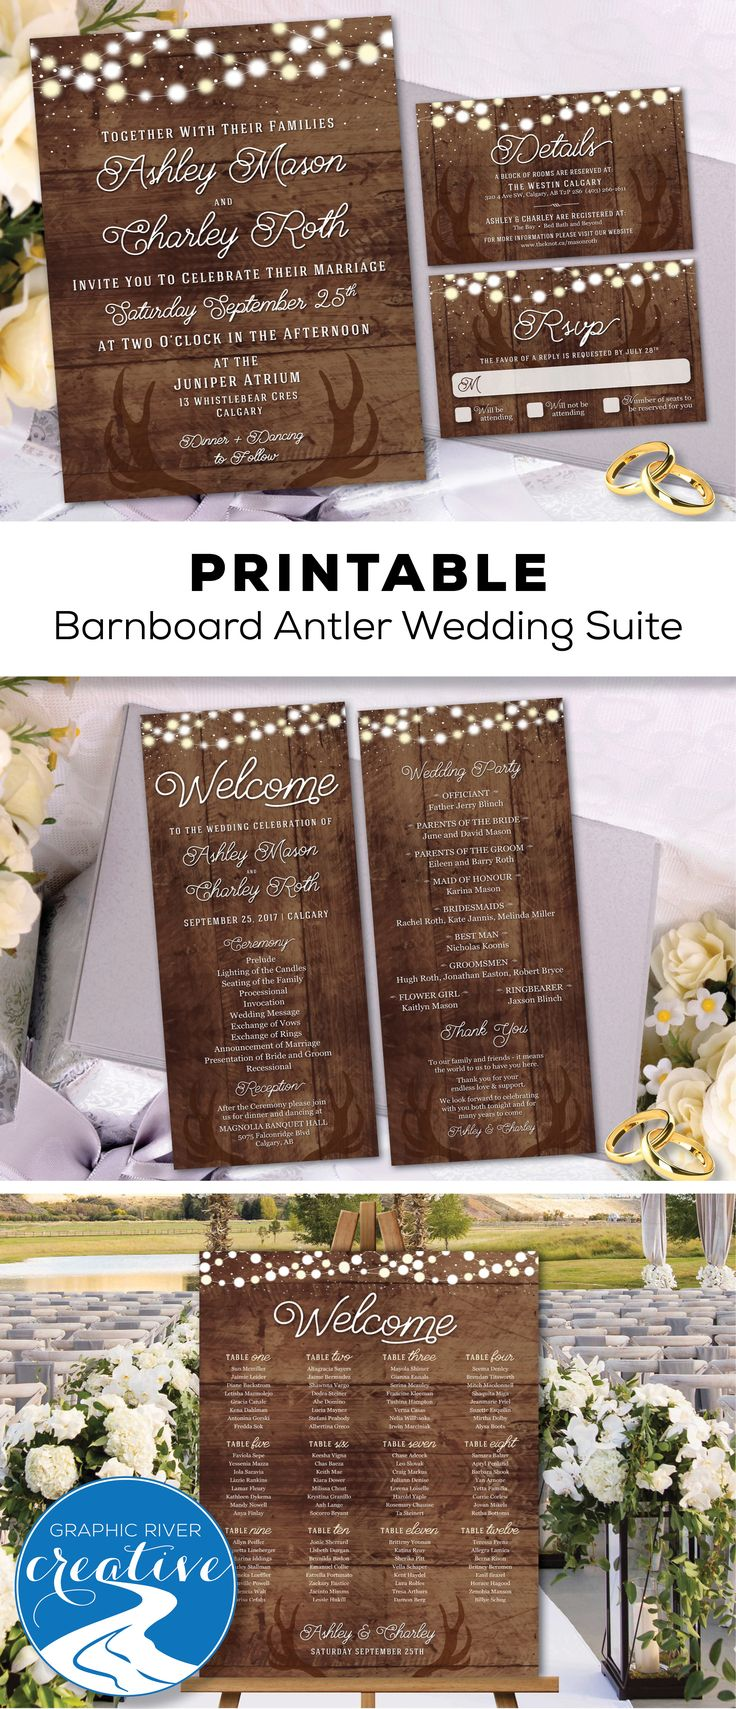 affordable wedding invitations affordable wedding invitations Graphic River Creative Etsy Printable Invitations We customize You Print Easy Affordable Affordable Wedding